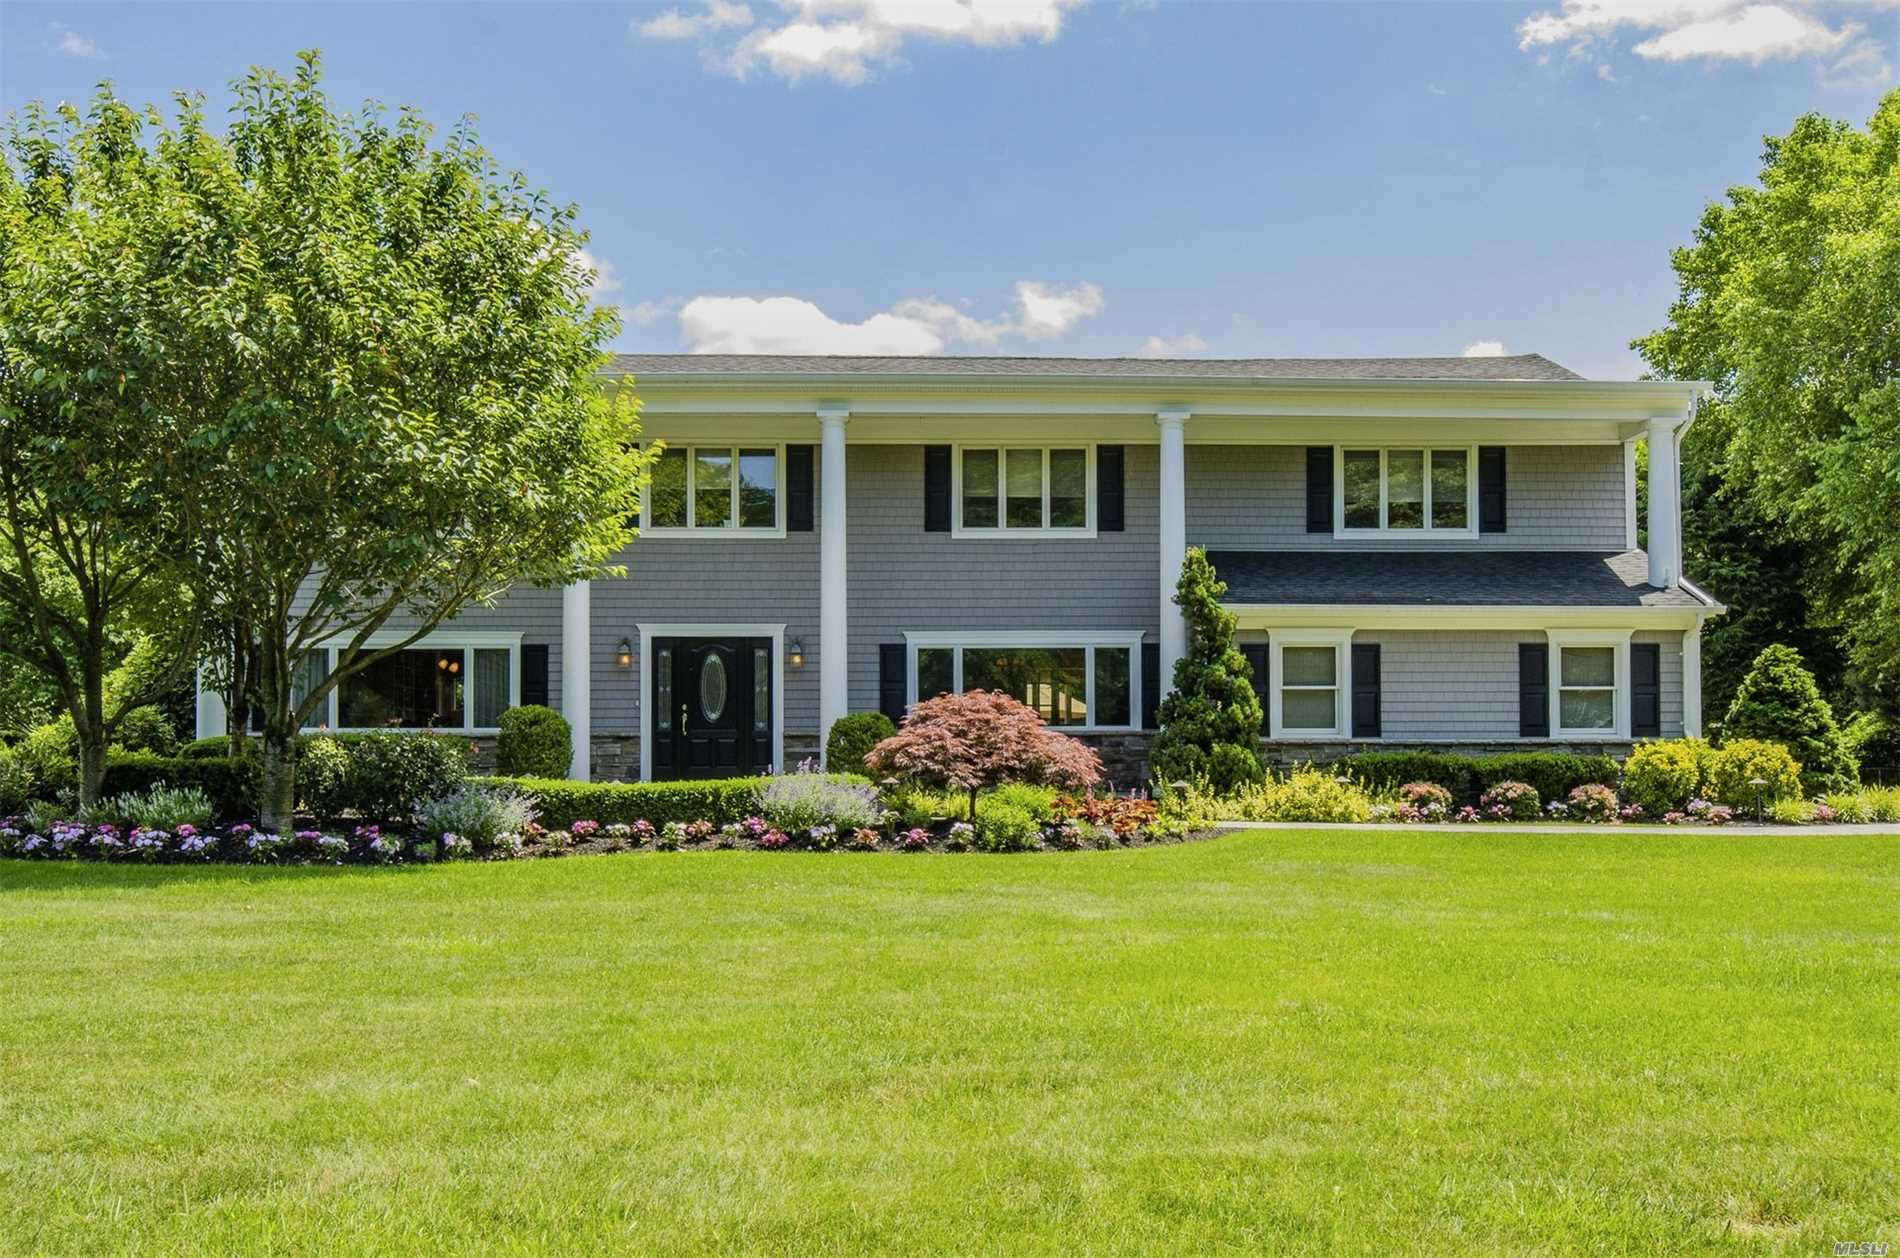 Magnificent 5 Bdrm 2.5 Bth Colonial In Northport Bay Estates. This Home Presents Itself With A Stately Curb Appeal As You Approach, Intricate Mouldings And Hardwood Floors Throughout Which Only Enhance The Ambiance Of This Home. Radiant Heat In Master & Family Baths. An Open Floor Plan With Numerous Upgrades And Craftsmanship Throughout Make It Move In Ready . The Wonderful Outdoor Living Space Is The Perfect Venue For Entertaining And Relaxing. Private Beach Rights !!